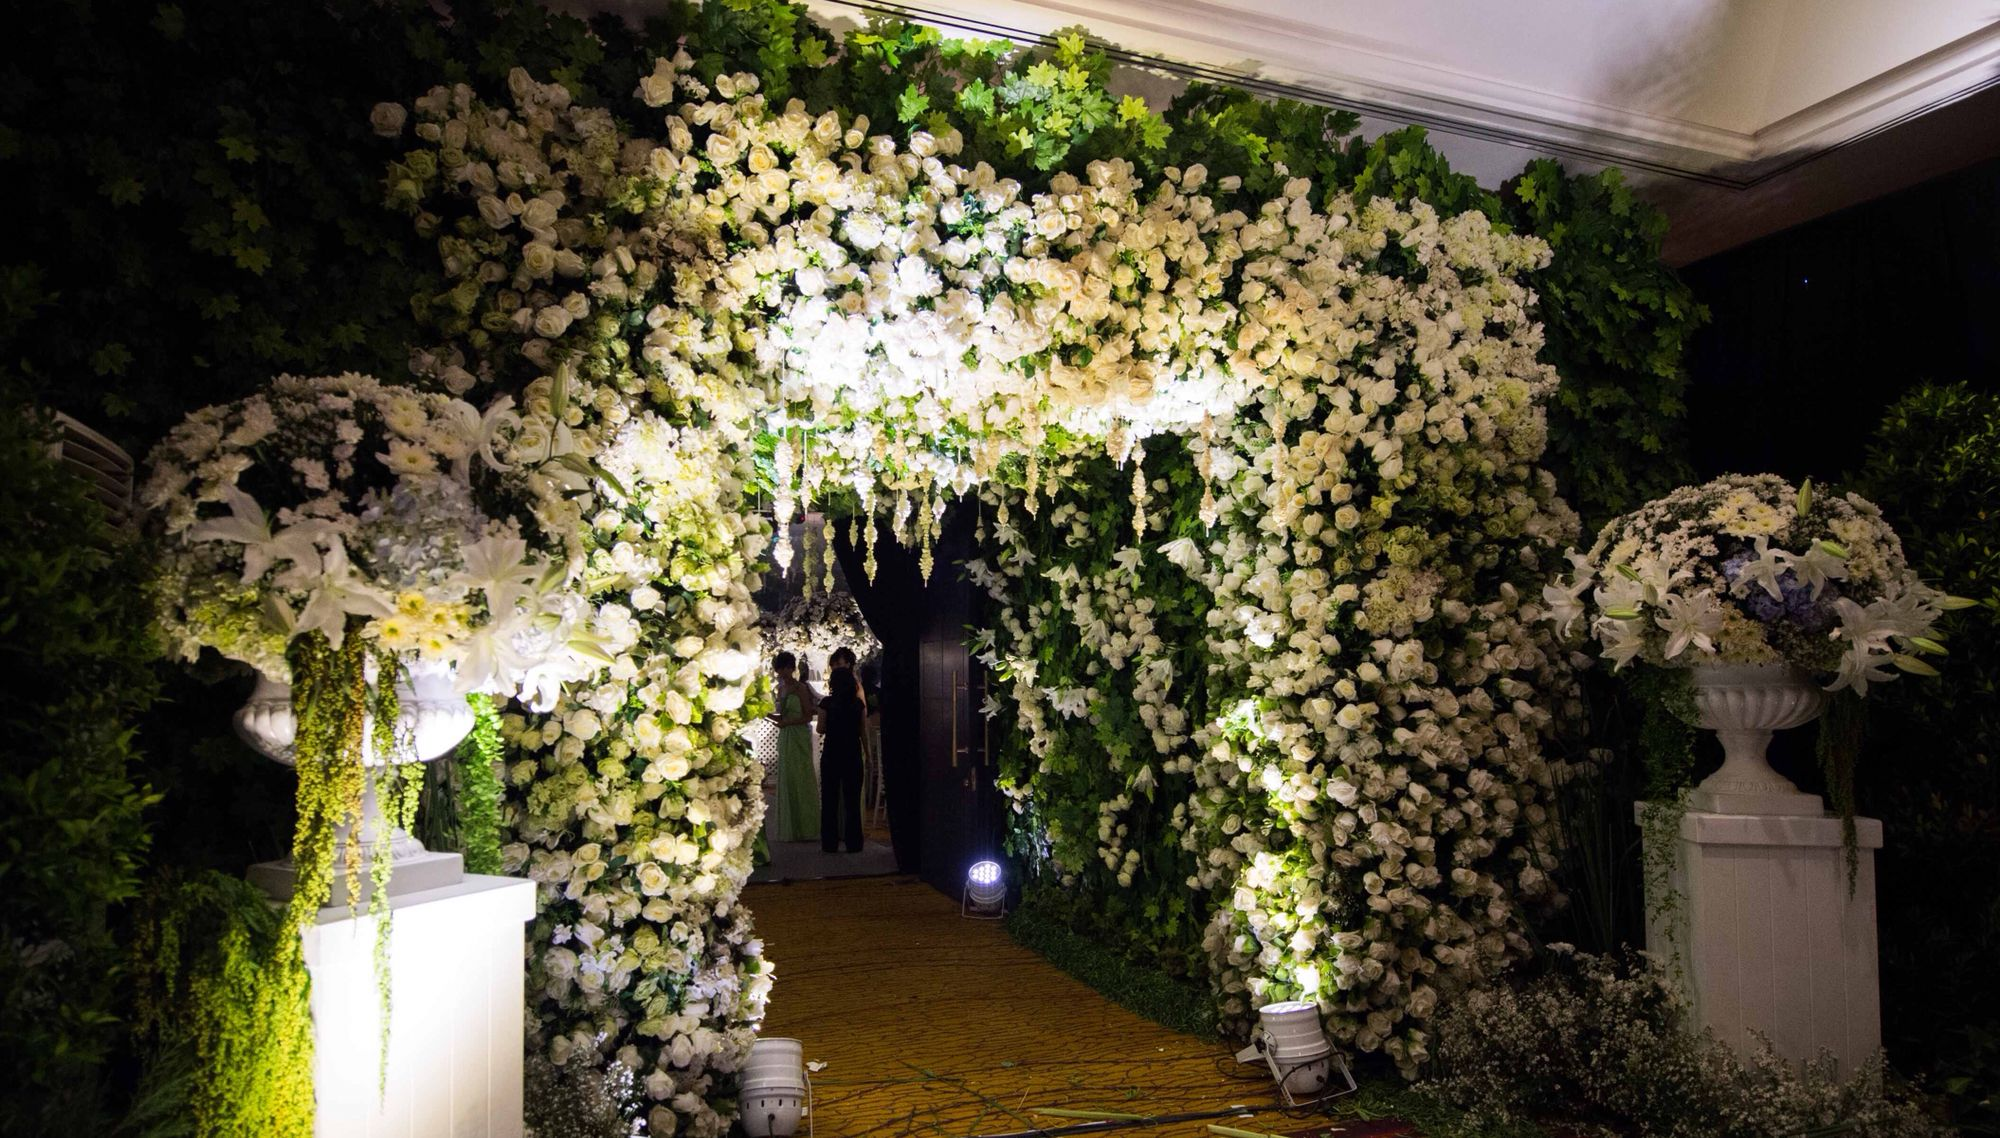 Wedding gate and stage decoration  Wedding gate  Party  Pinterest  Weddings